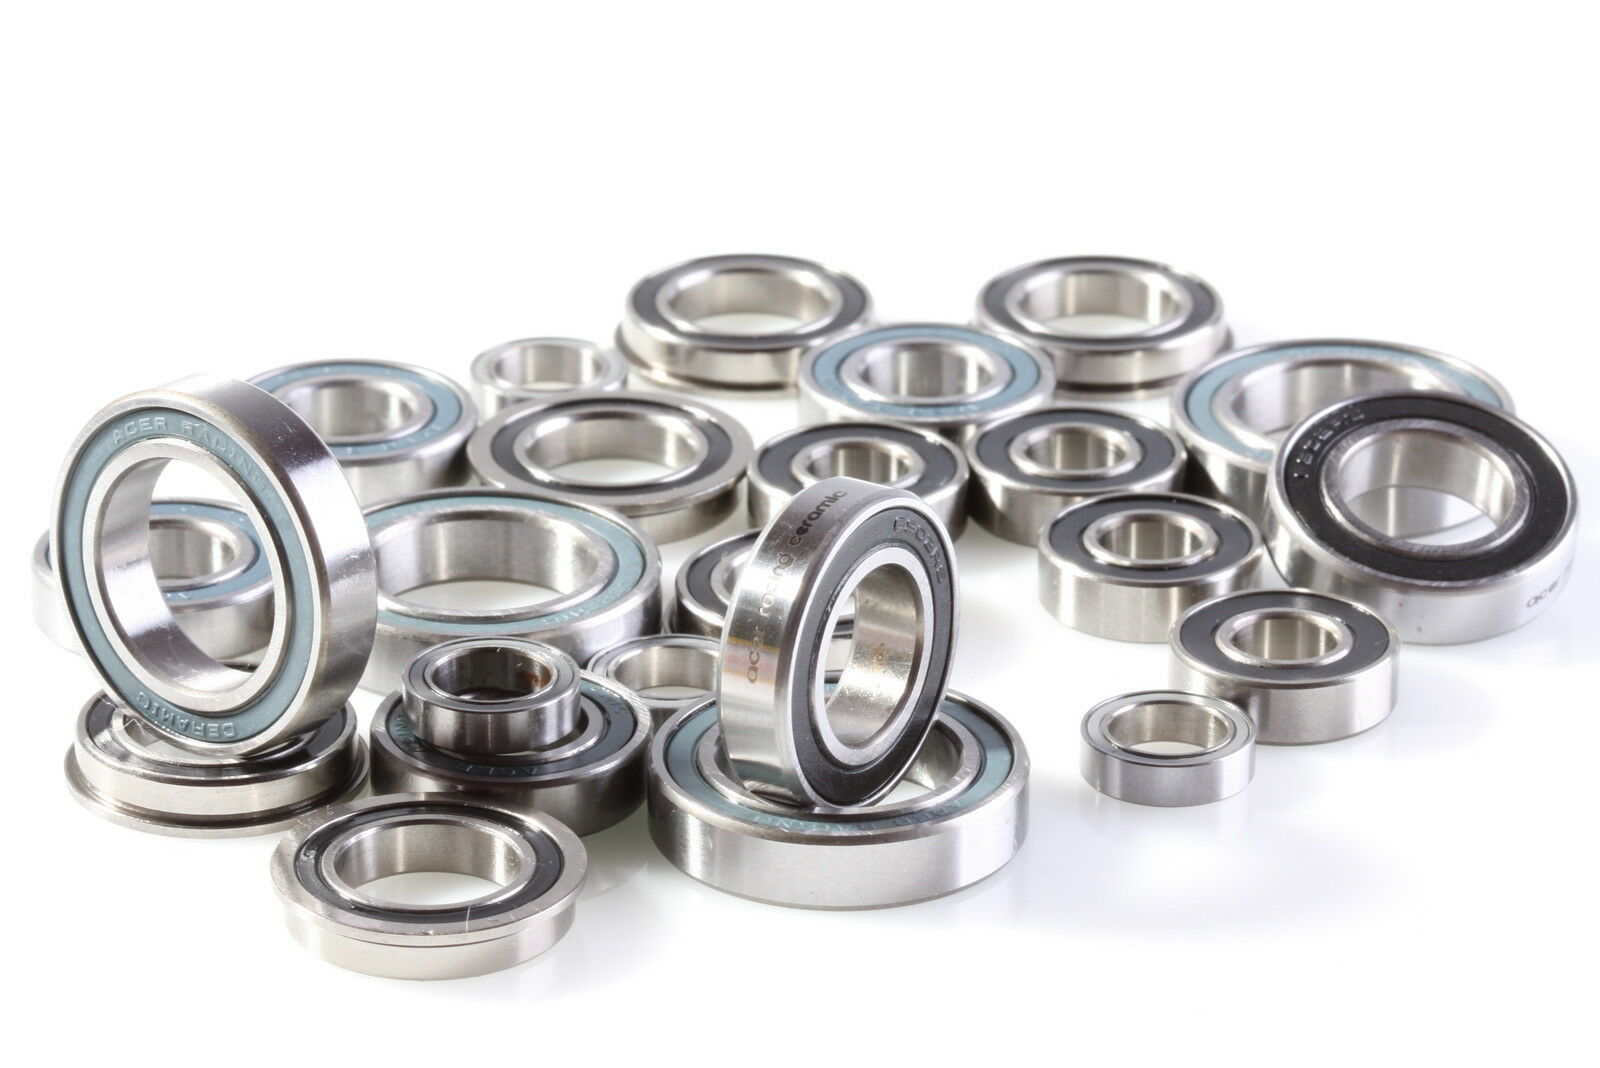 Team Losi 5IVE T 5T Ceramic Ball Bearing Kit by World Champions ACER Racing